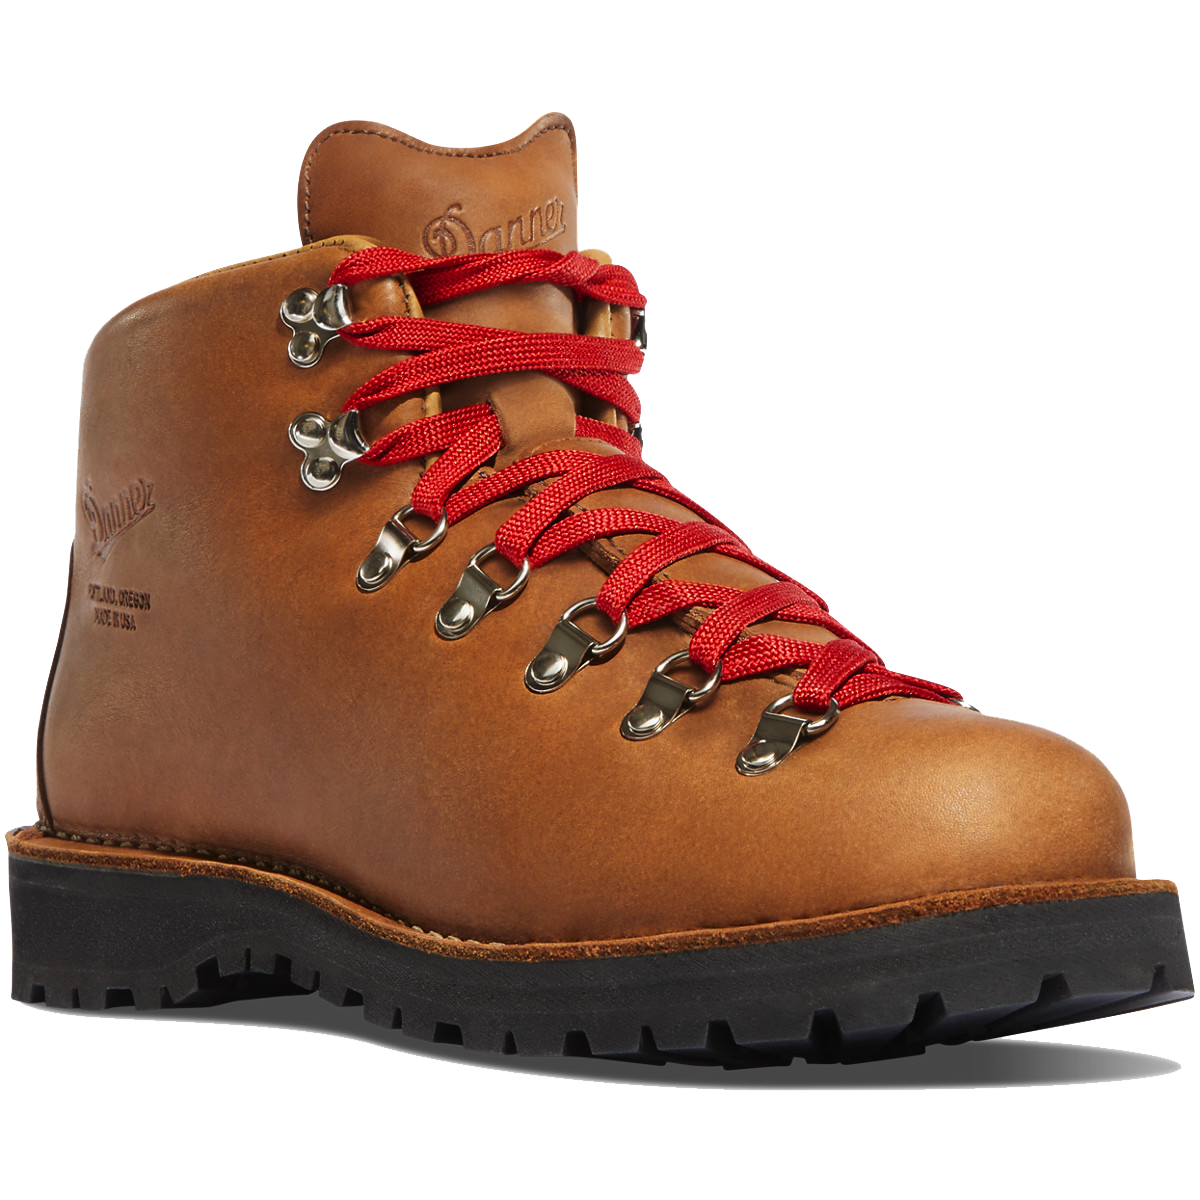 Mountain Light Hiking Boots - Cascade